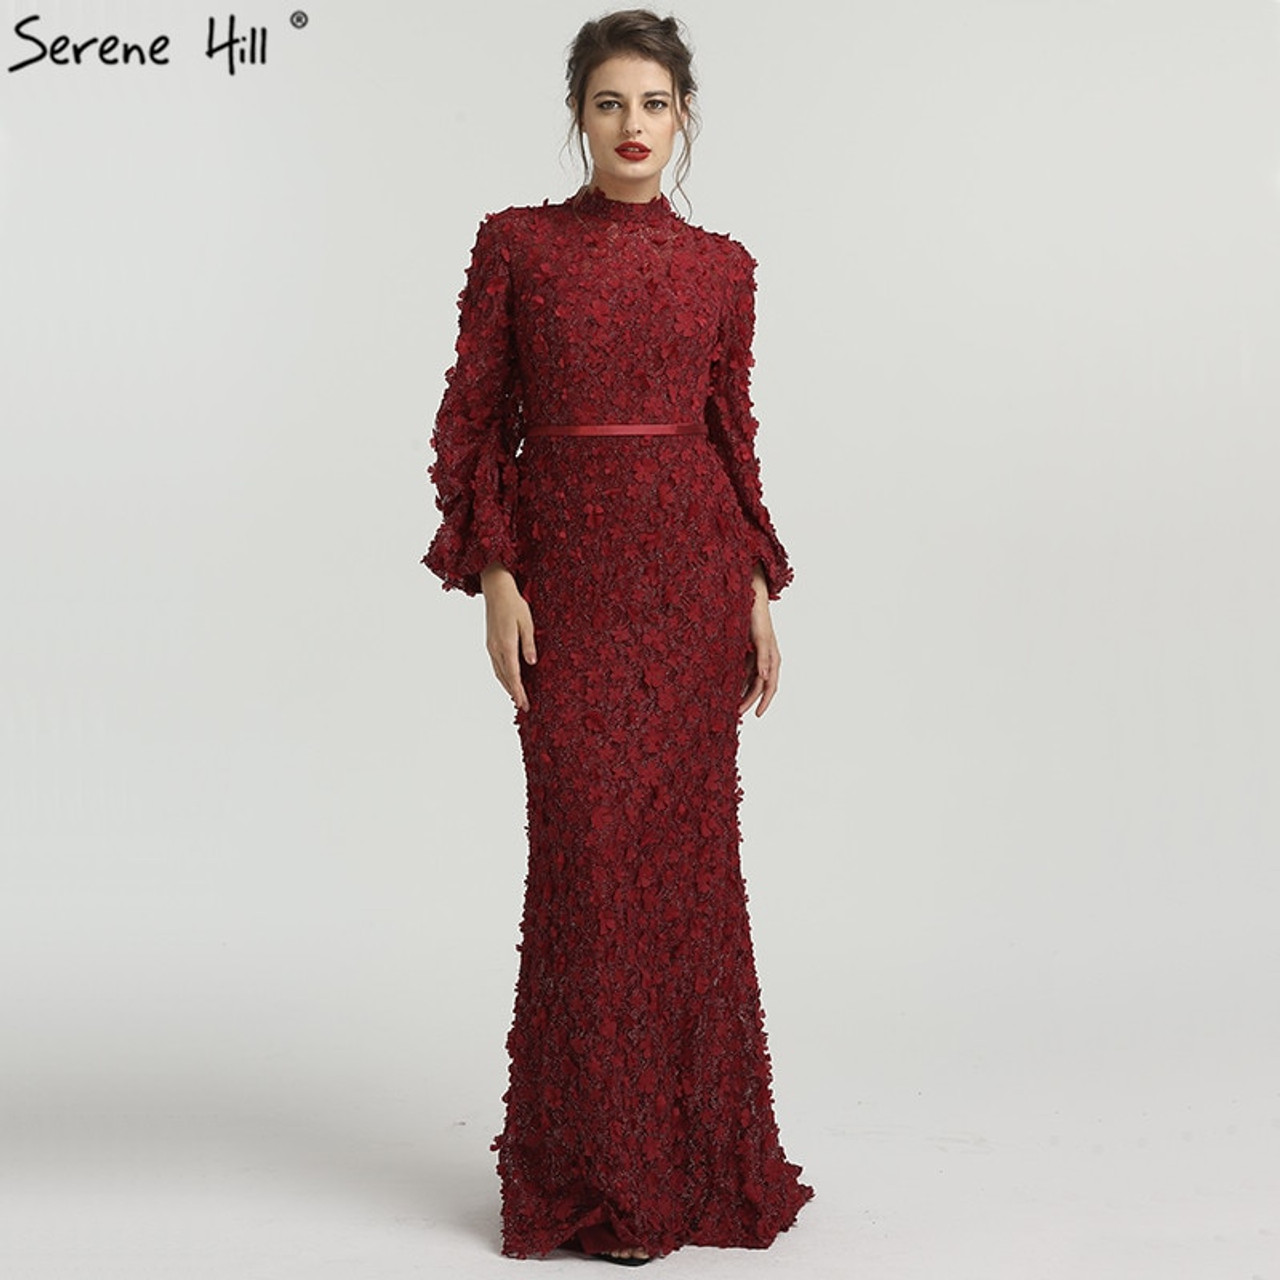 6c81a07981 Flowers Pearls Long Sleeves Mermaid Evening Dresses Muslim Fashion Elegant  Tulle Evening Gowns 2019 Serene Hill LA6293